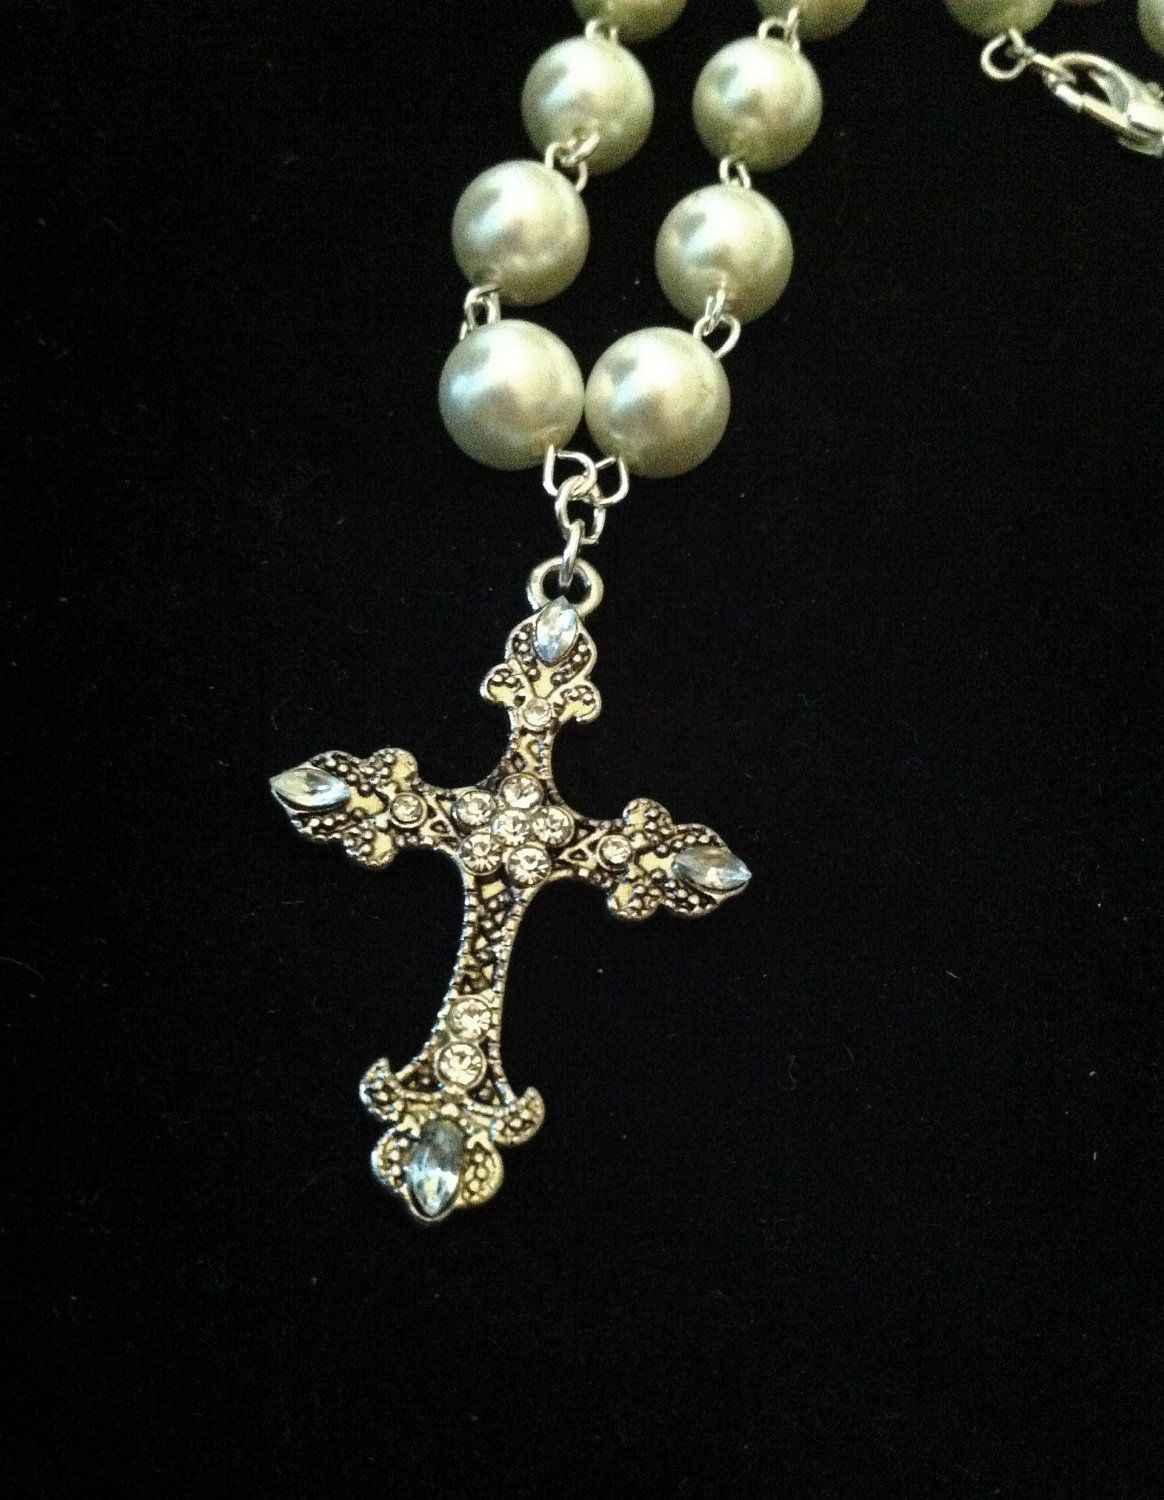 Wedding cross necklace pearl necklace with rhinestone cross pendant wedding cross necklace pearl necklace with rhinestone cross pendant first communion necklace 1043 3000 via etsy aloadofball Gallery